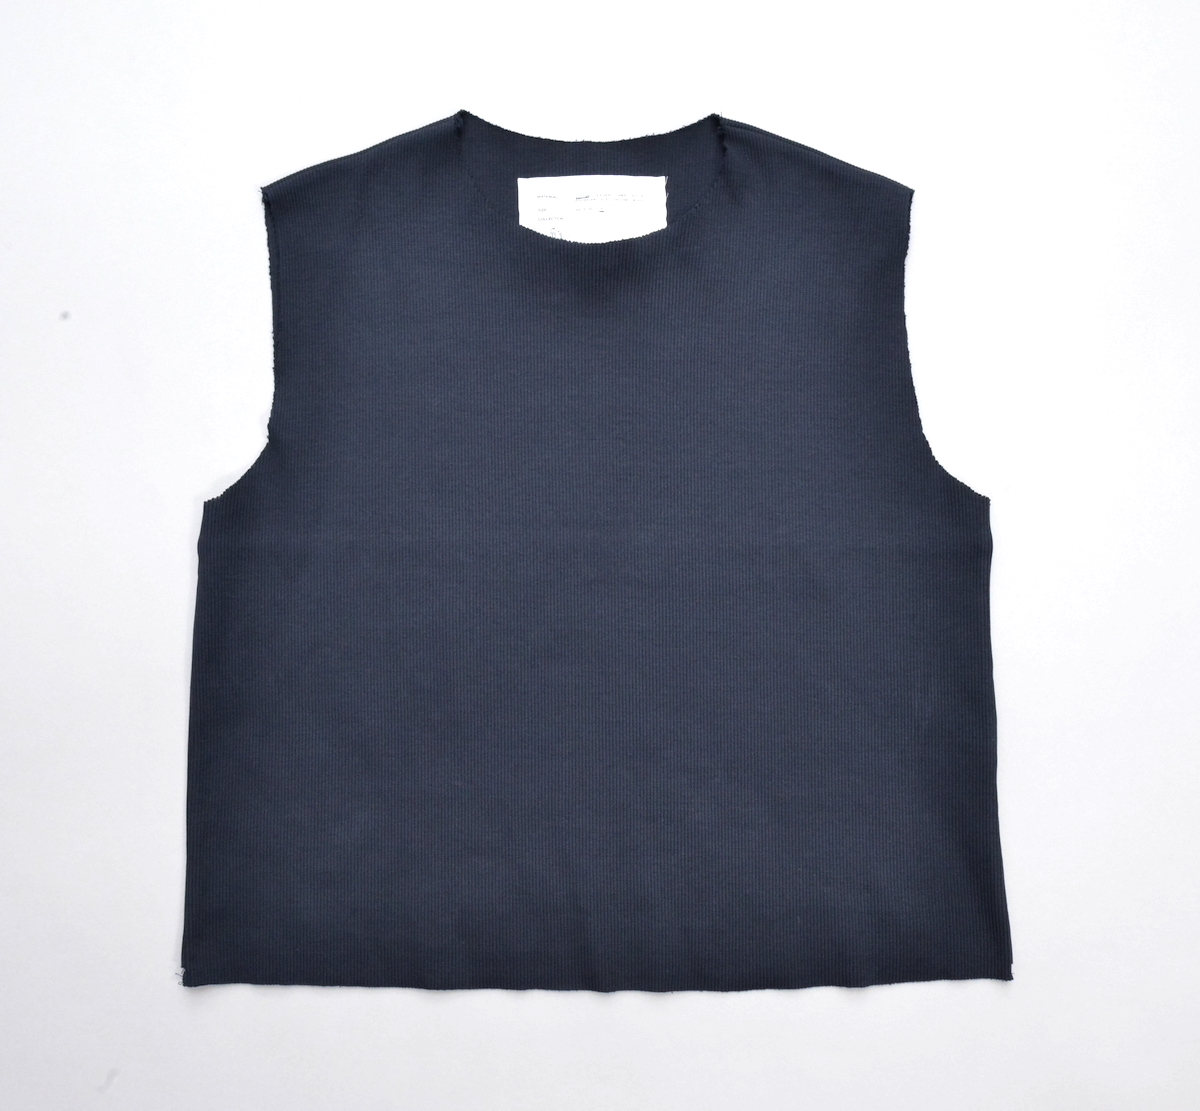 CAMIEL FORTGENS 「 11.01.09 FITTED RIB TOP JERSEY / NAVY 」